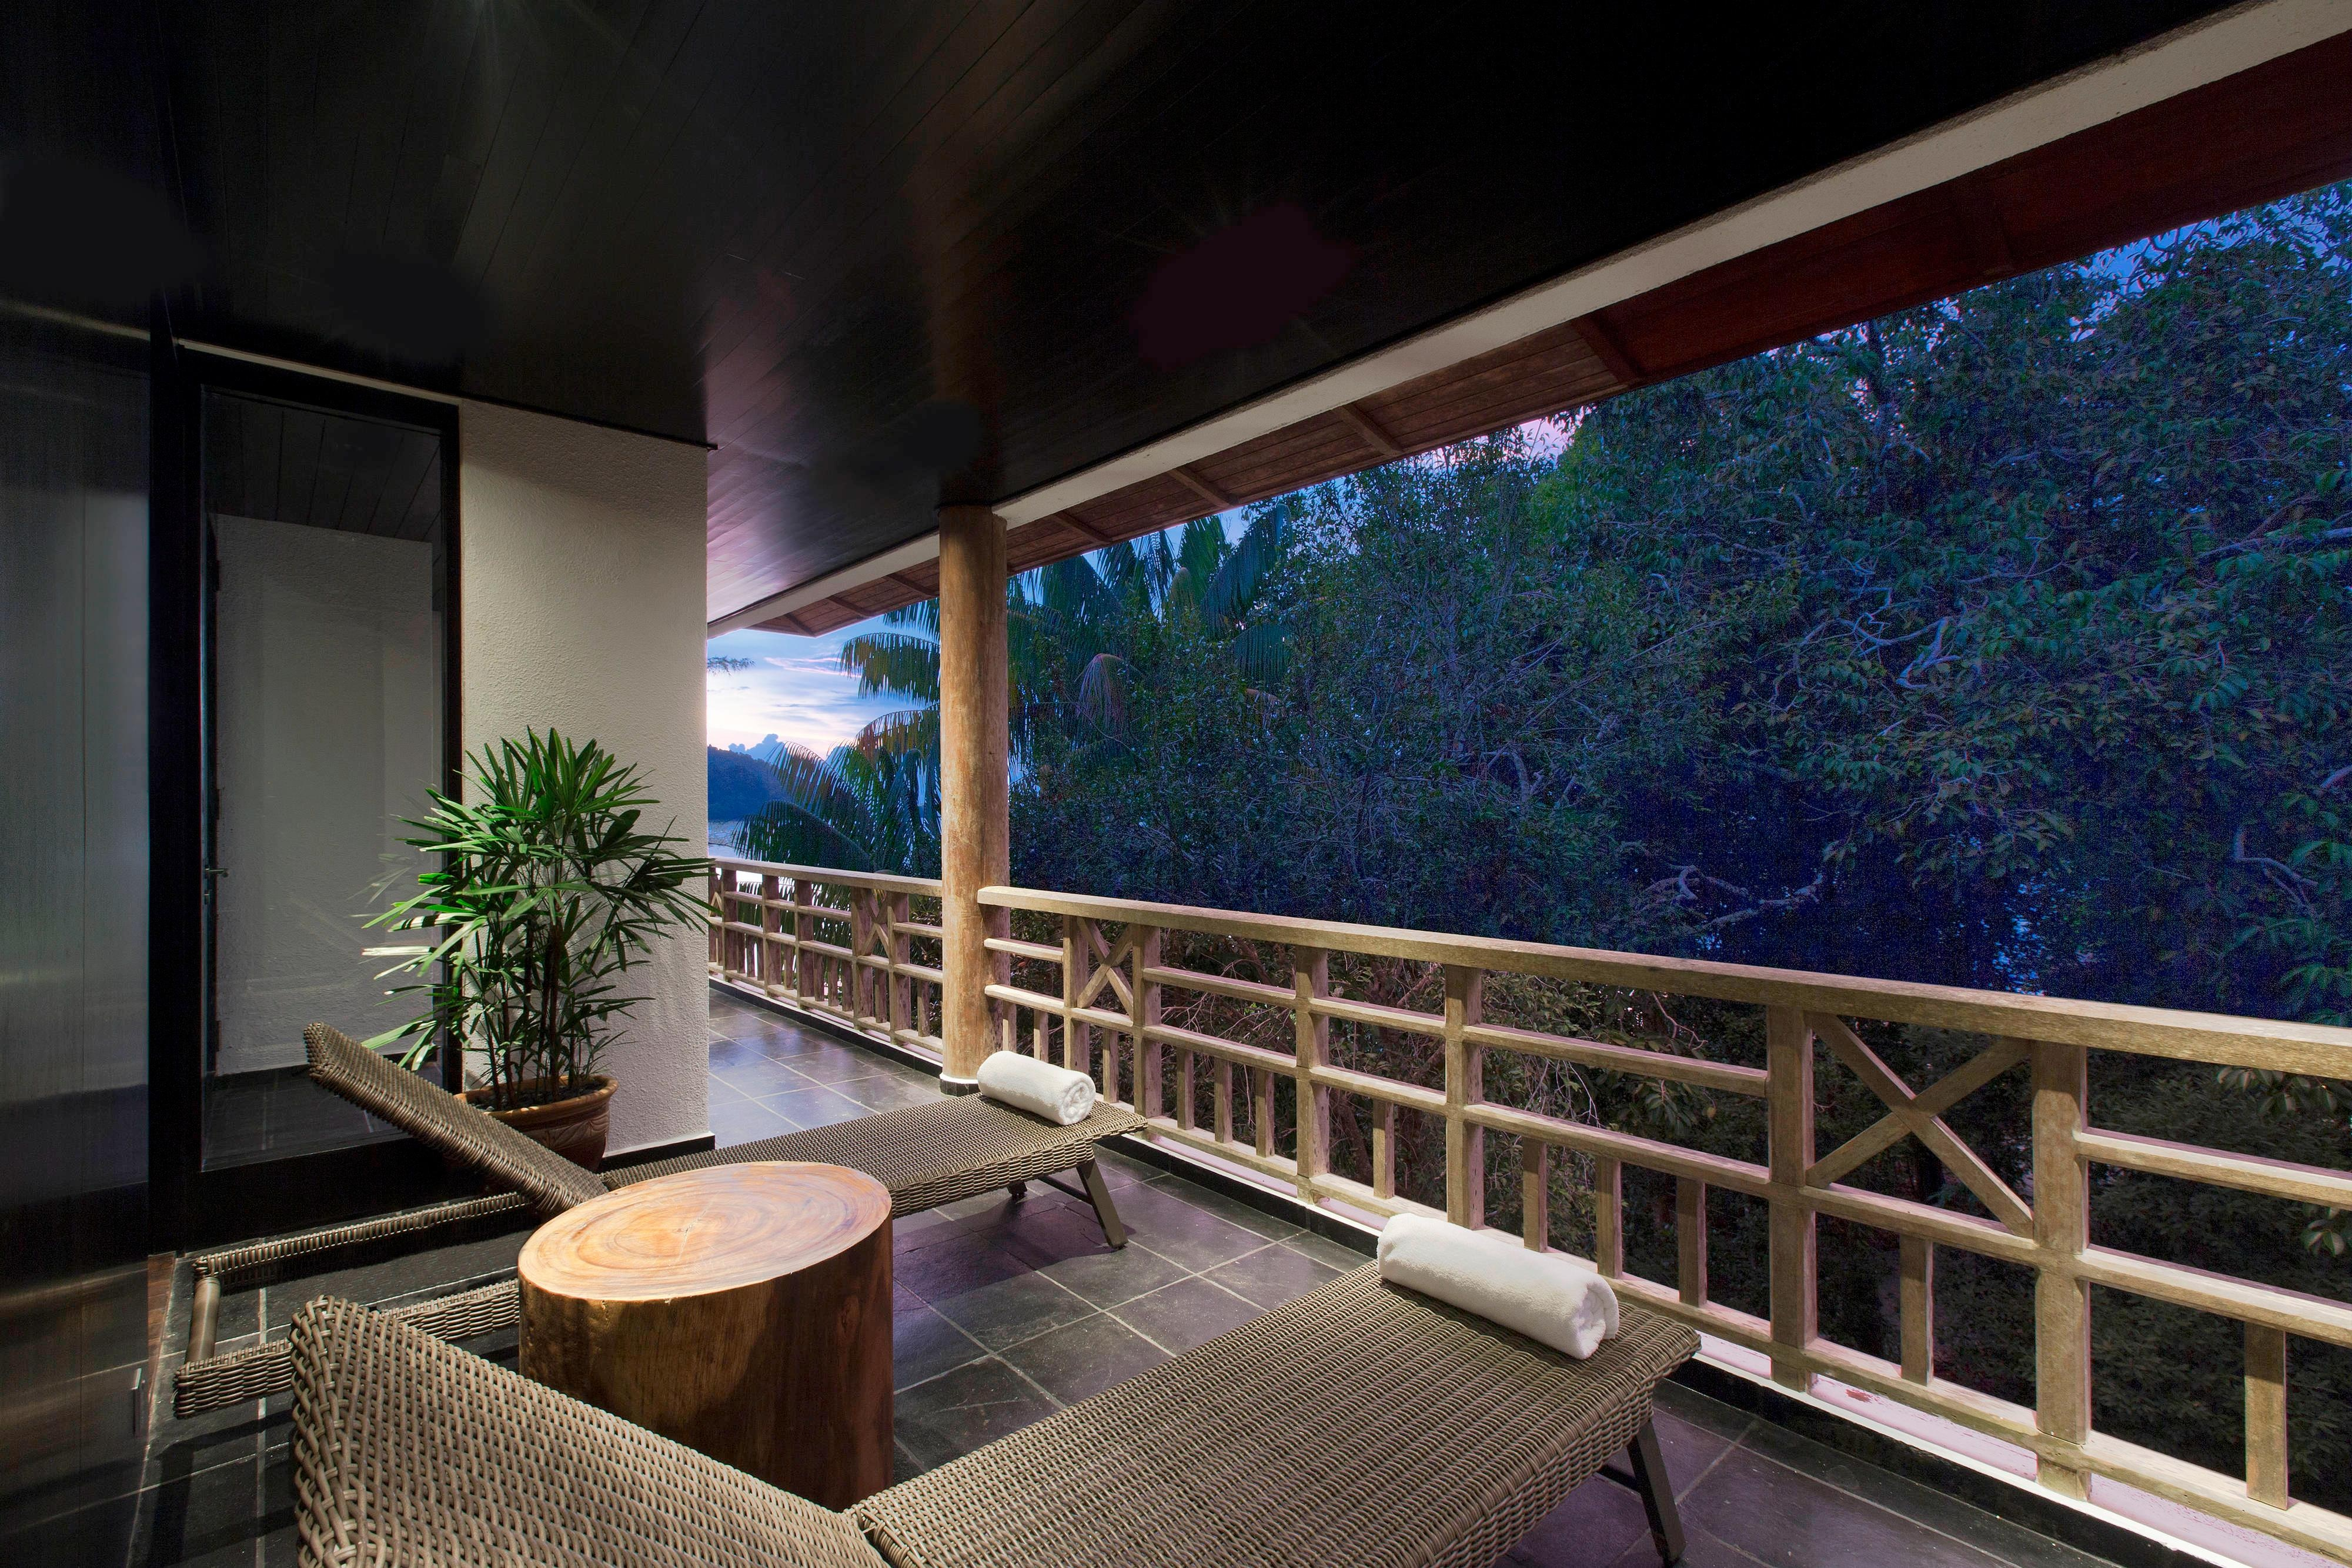 Presidential Suite - Balcony with a View